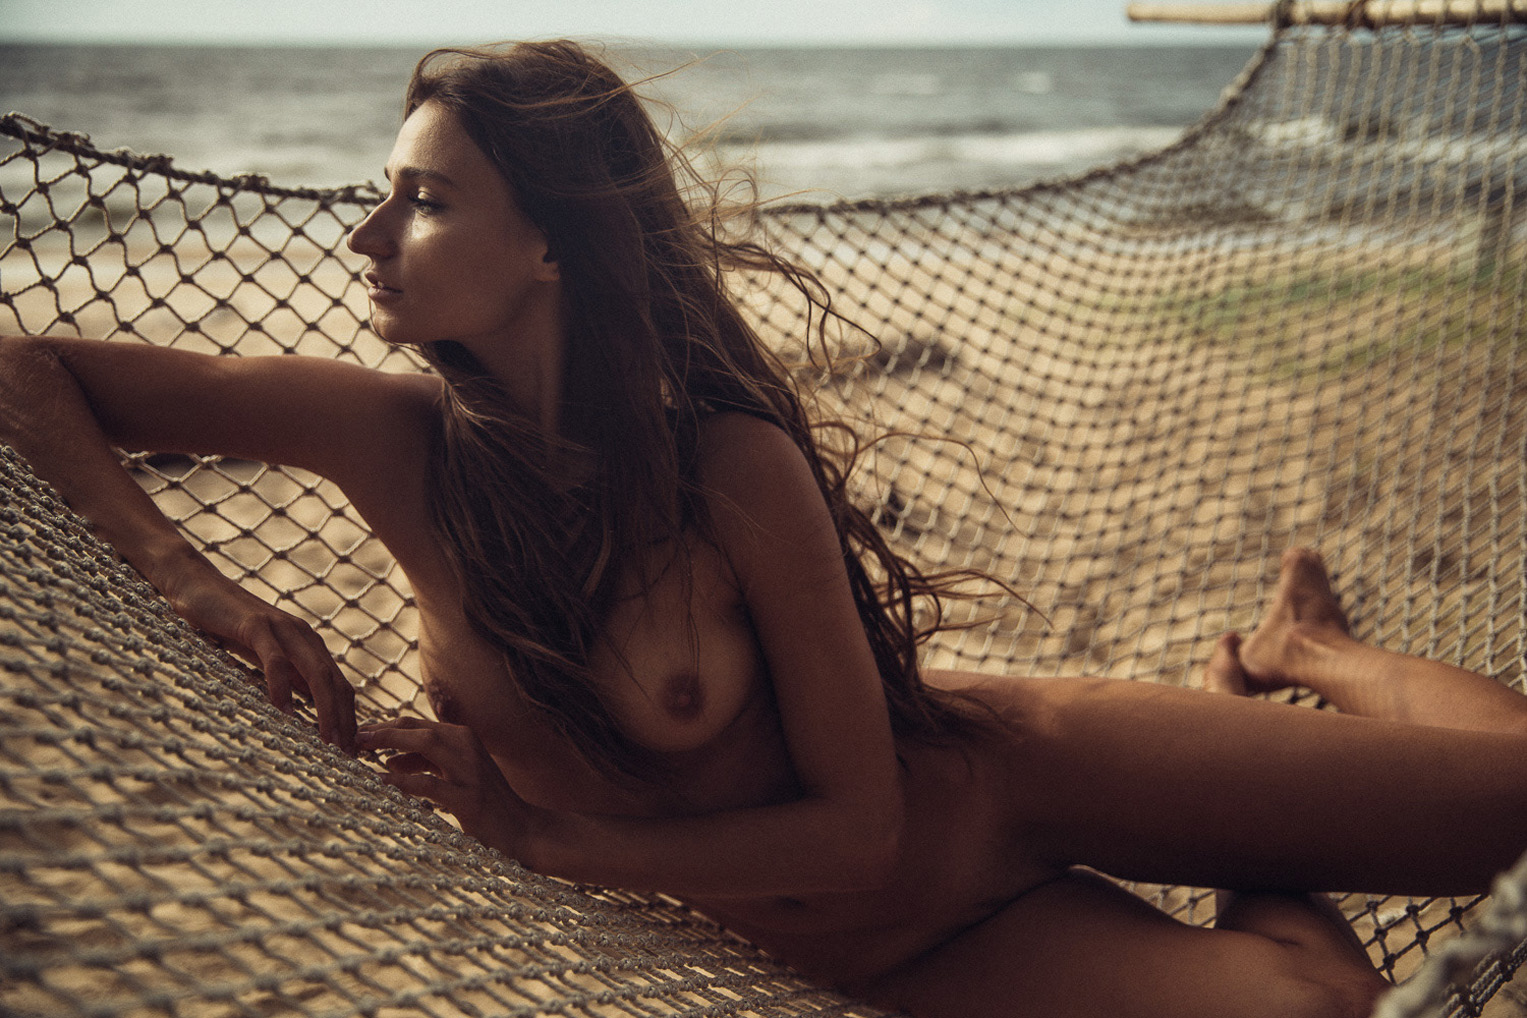 голая девушка в гамаке / Ilvy Kokomo nude by Thomas Agatz / in the Hammock